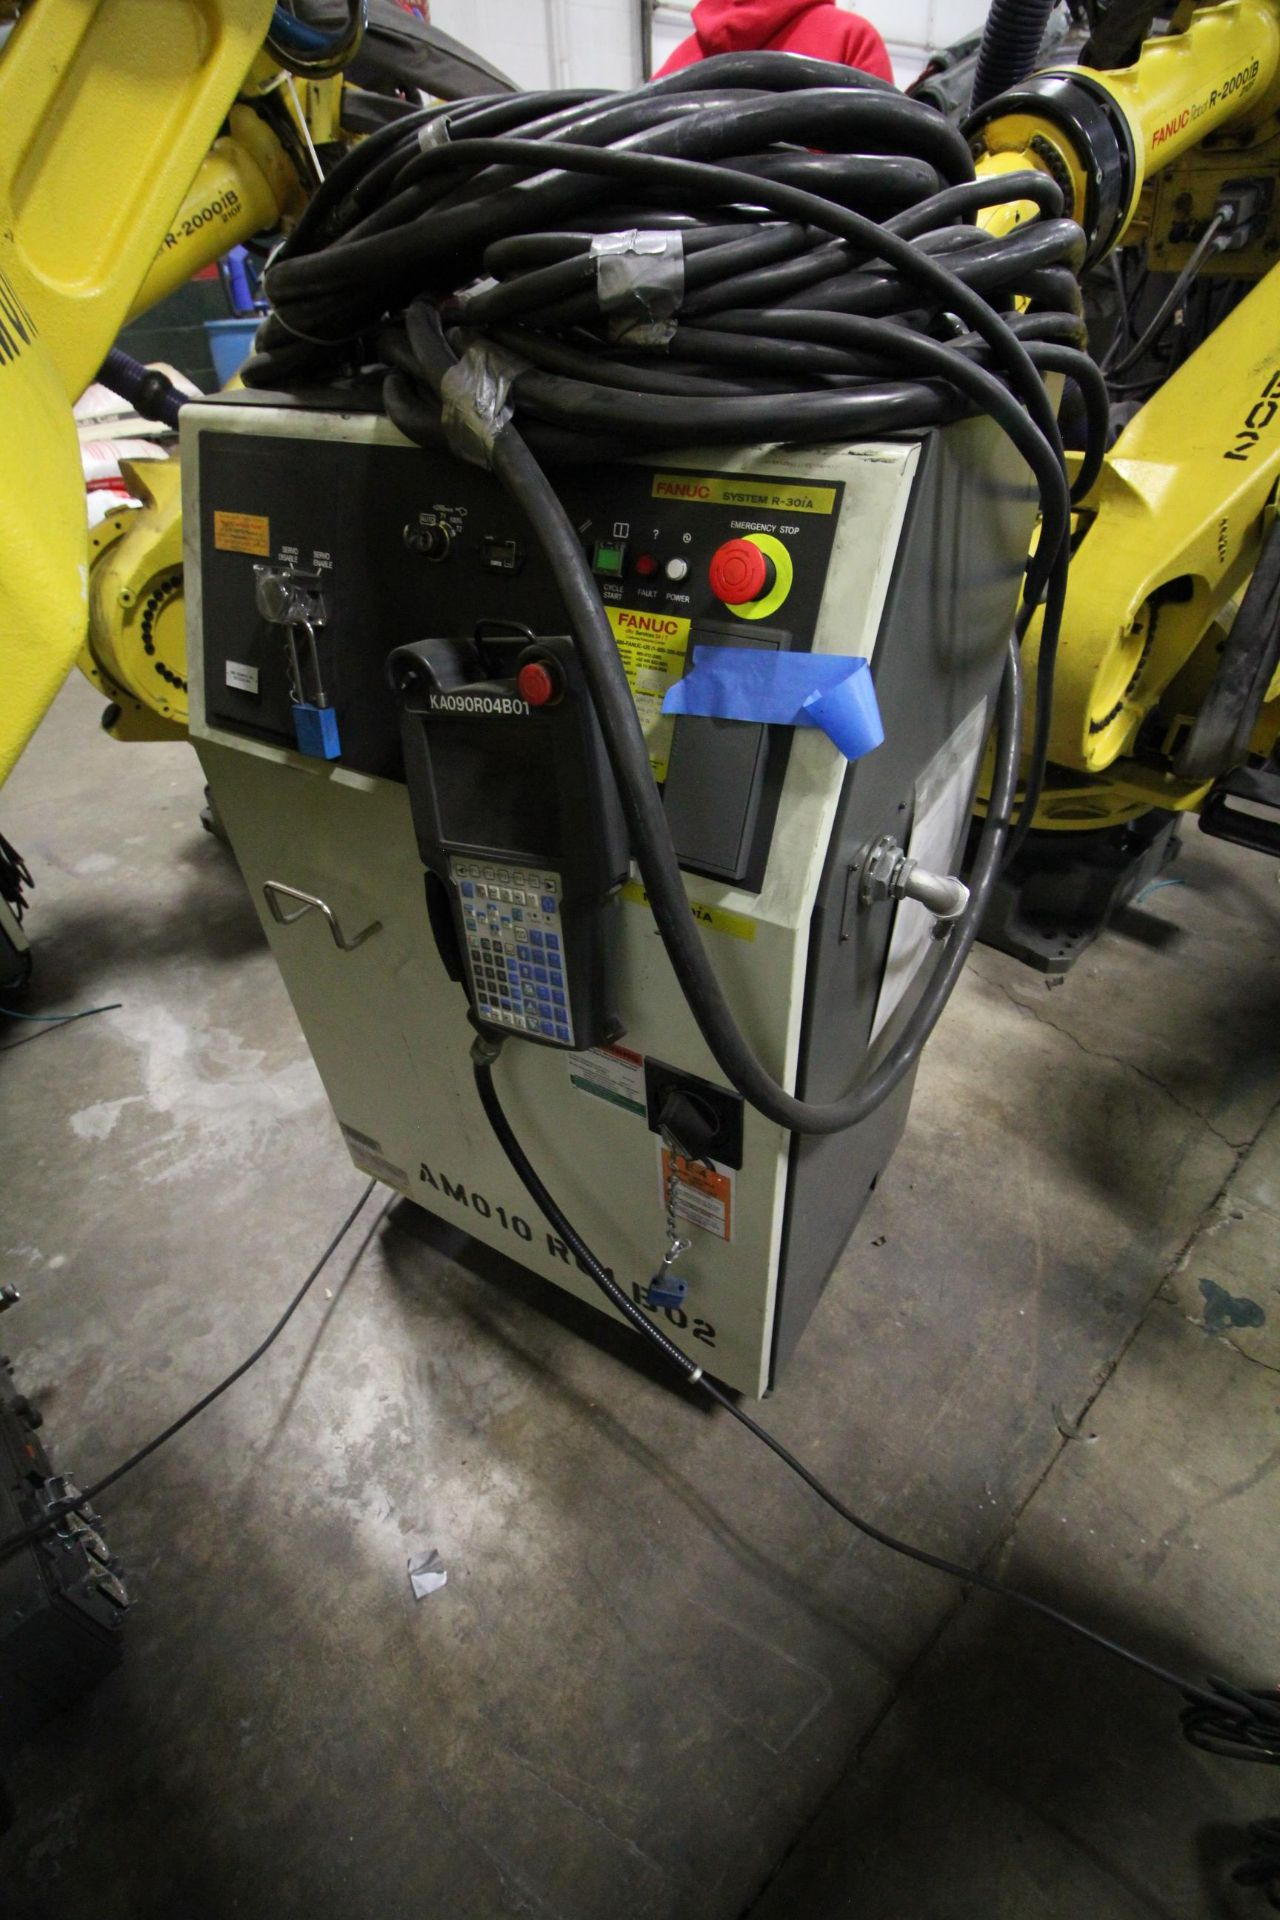 FANUC ROBOT M-900iA/400L WITH R-30iA CONTROLLER, TEACHPENDANT AND CABLES, SN 153431, YEAR 2014 - Image 8 of 11